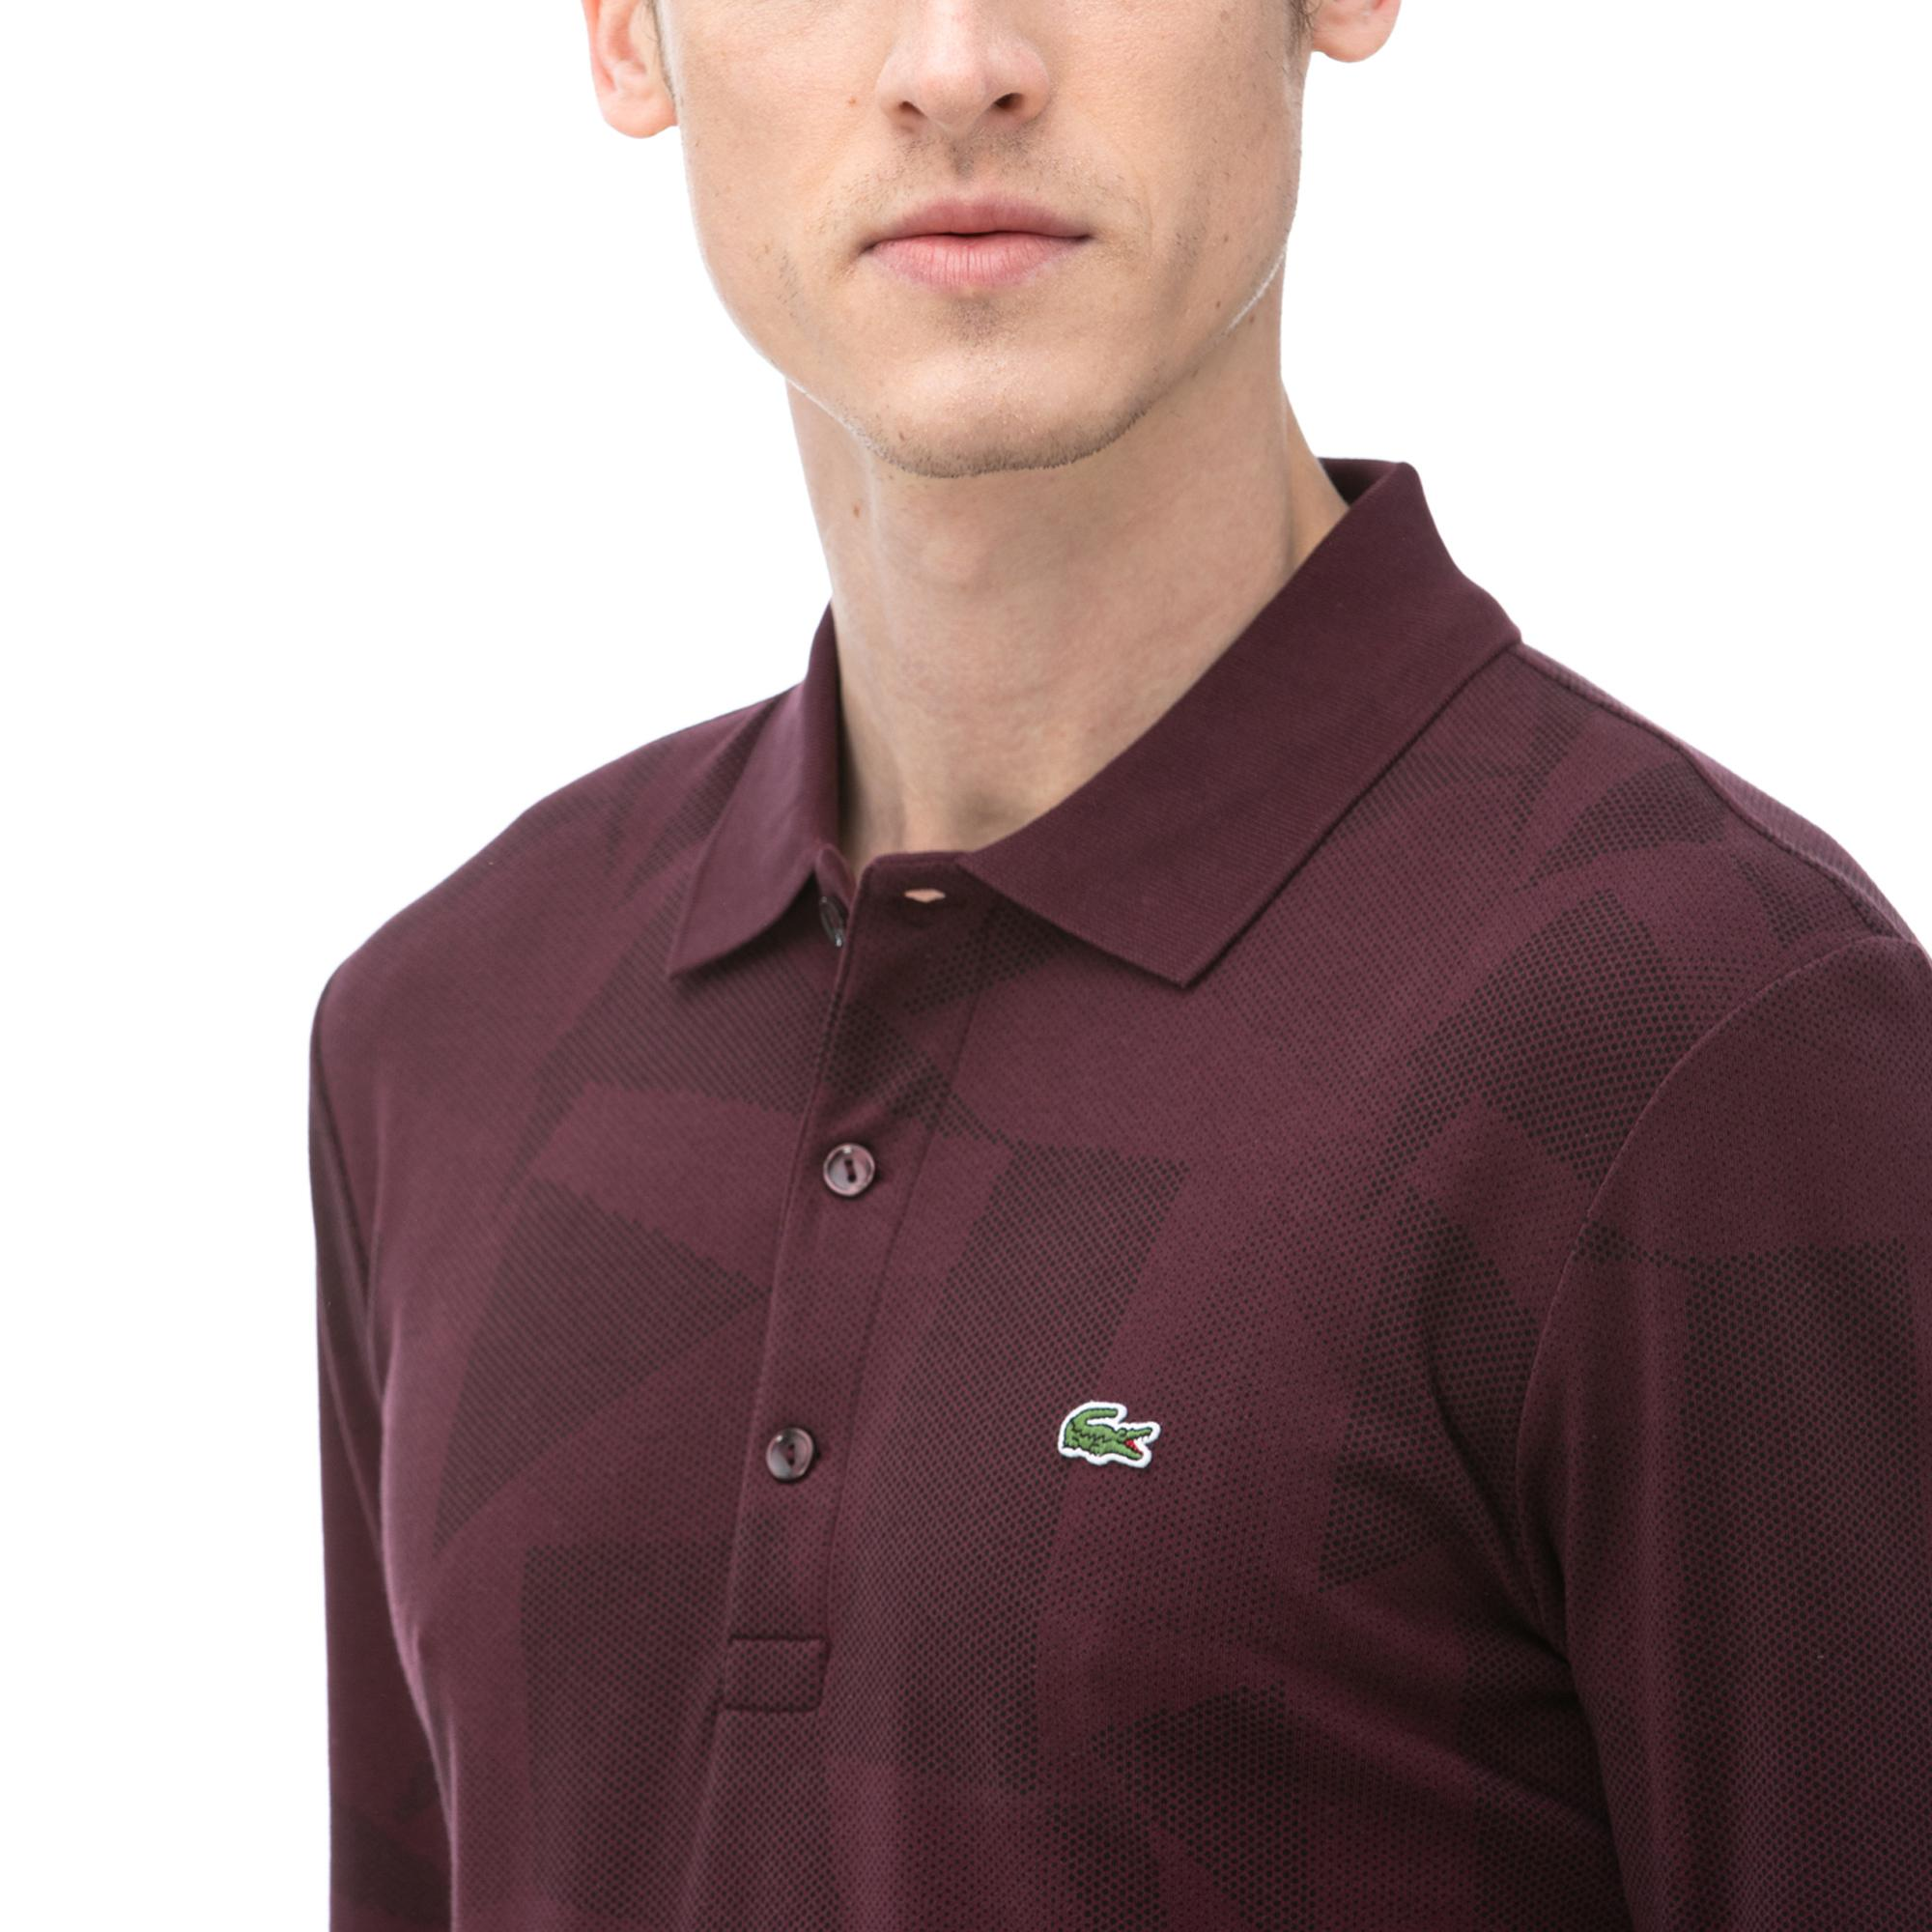 Lacoste Men's Regular Fit Jacquard Cotton Piqué Polo Shirt